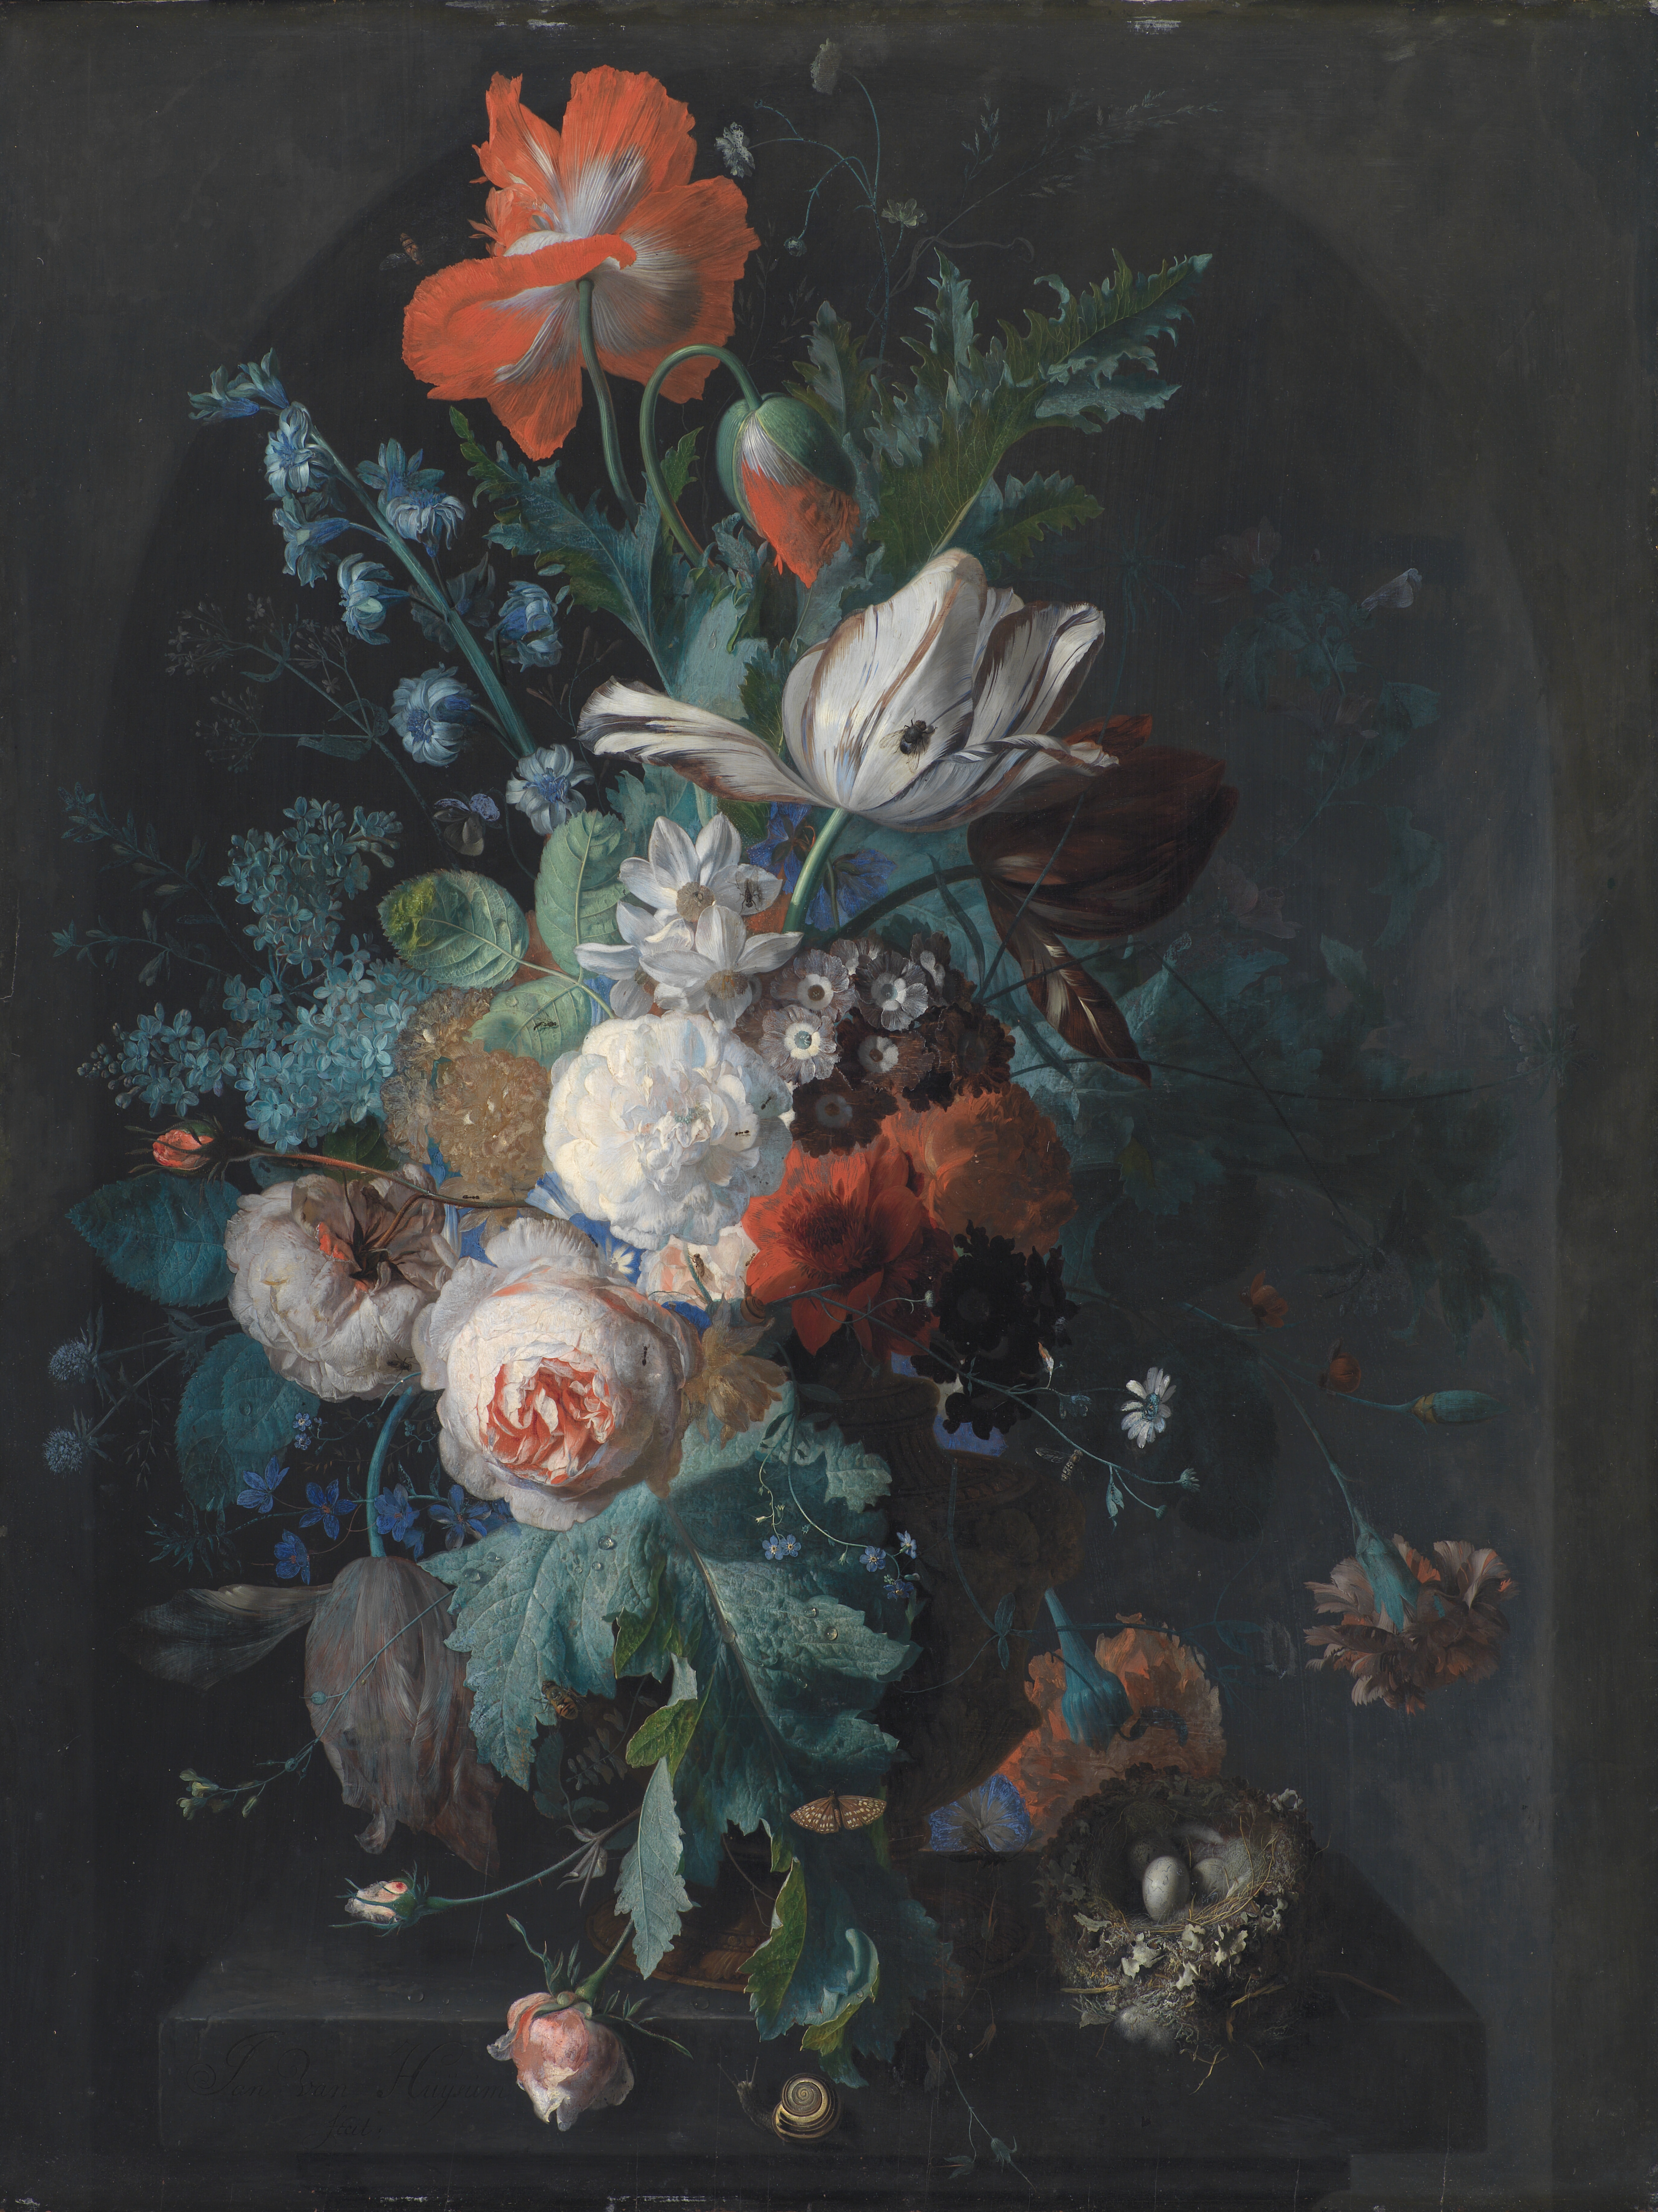 A Vase With Flowers Wikidata